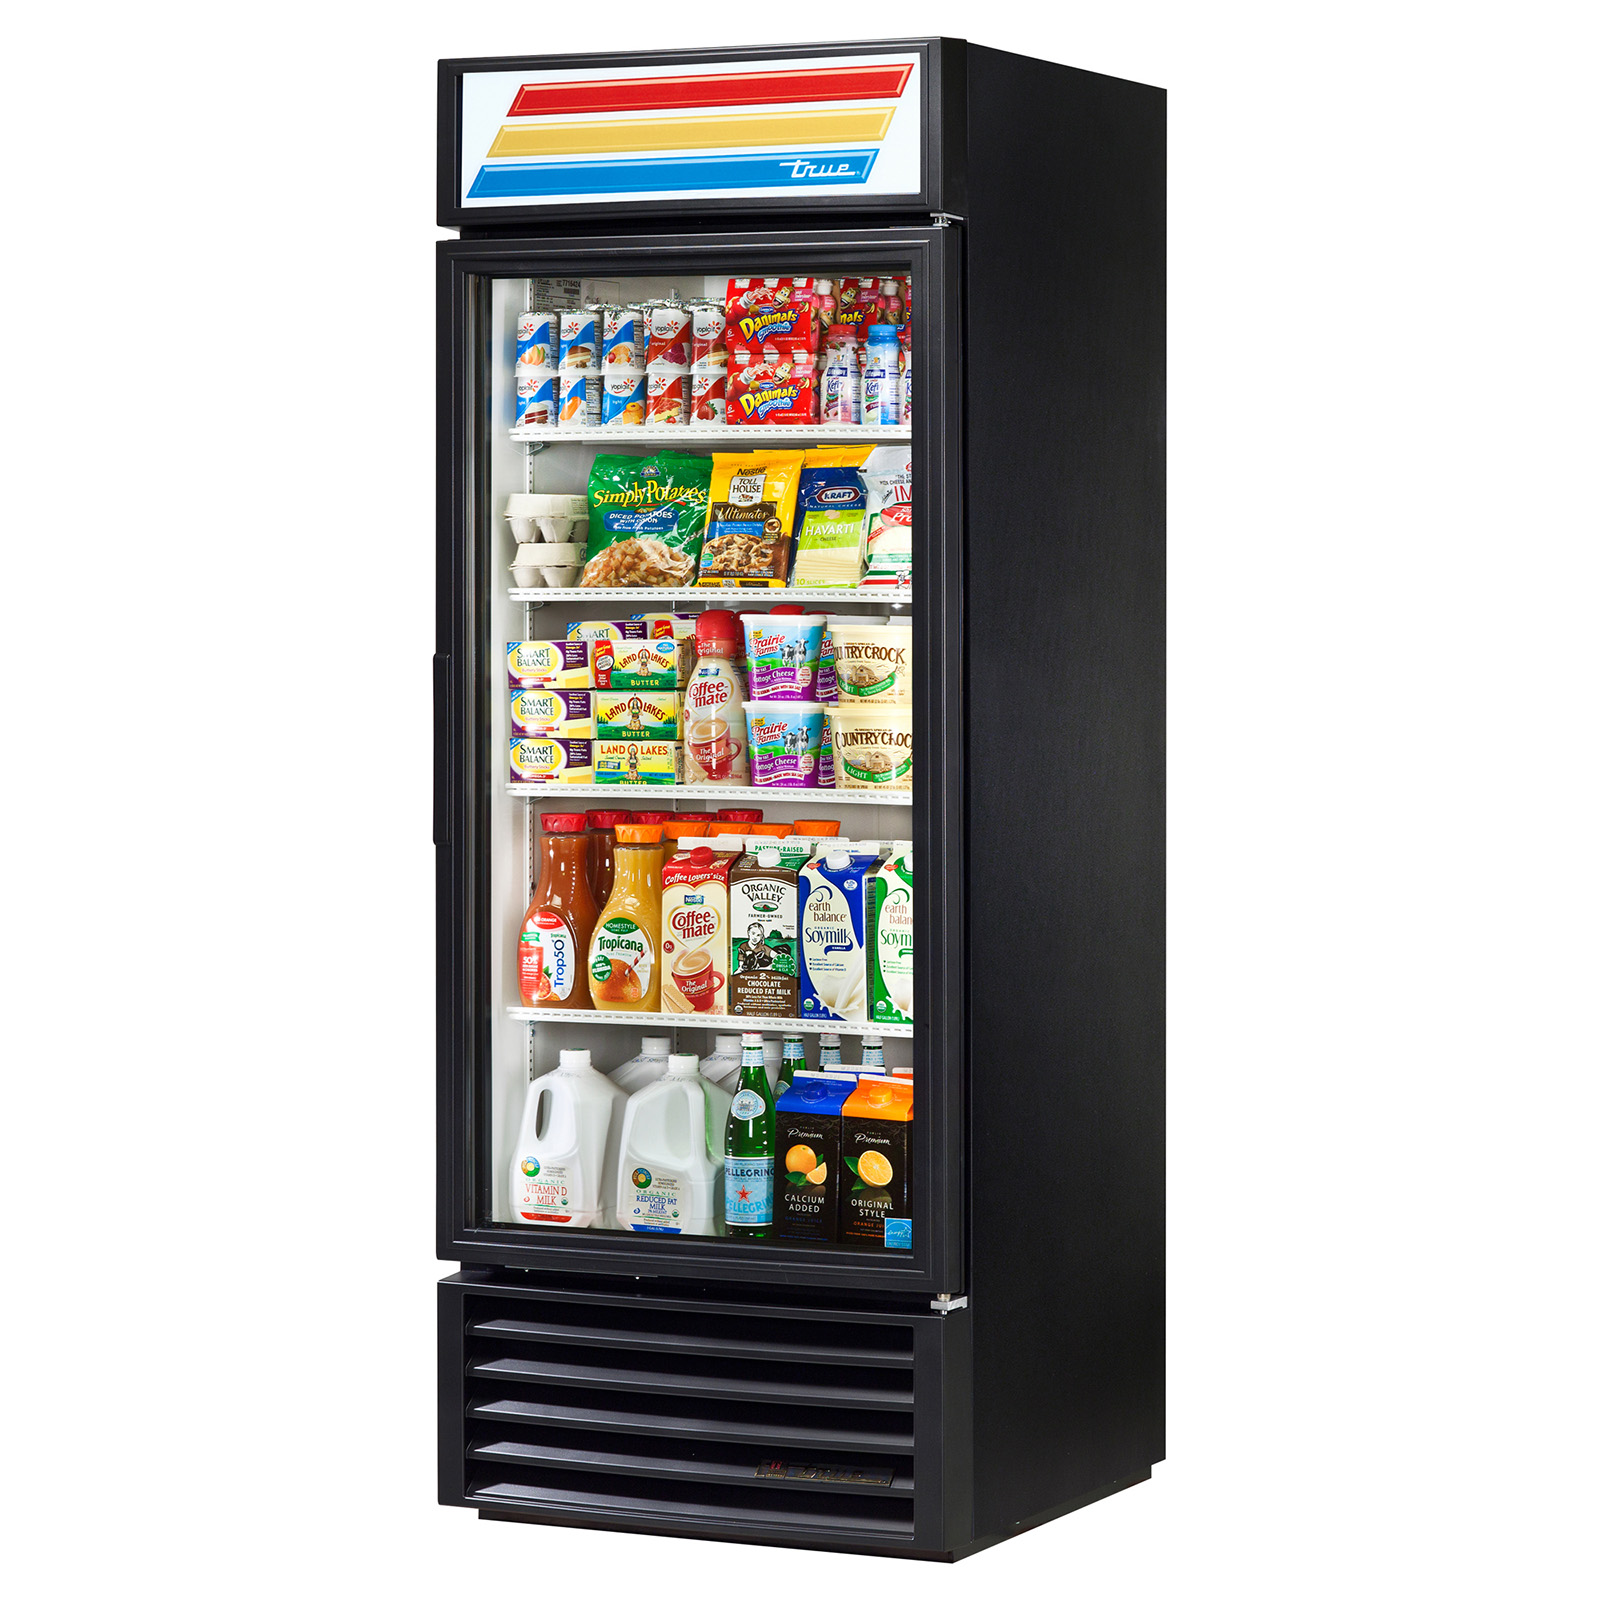 GDM-26-LD True - Refrigerated Merchandiser one-section